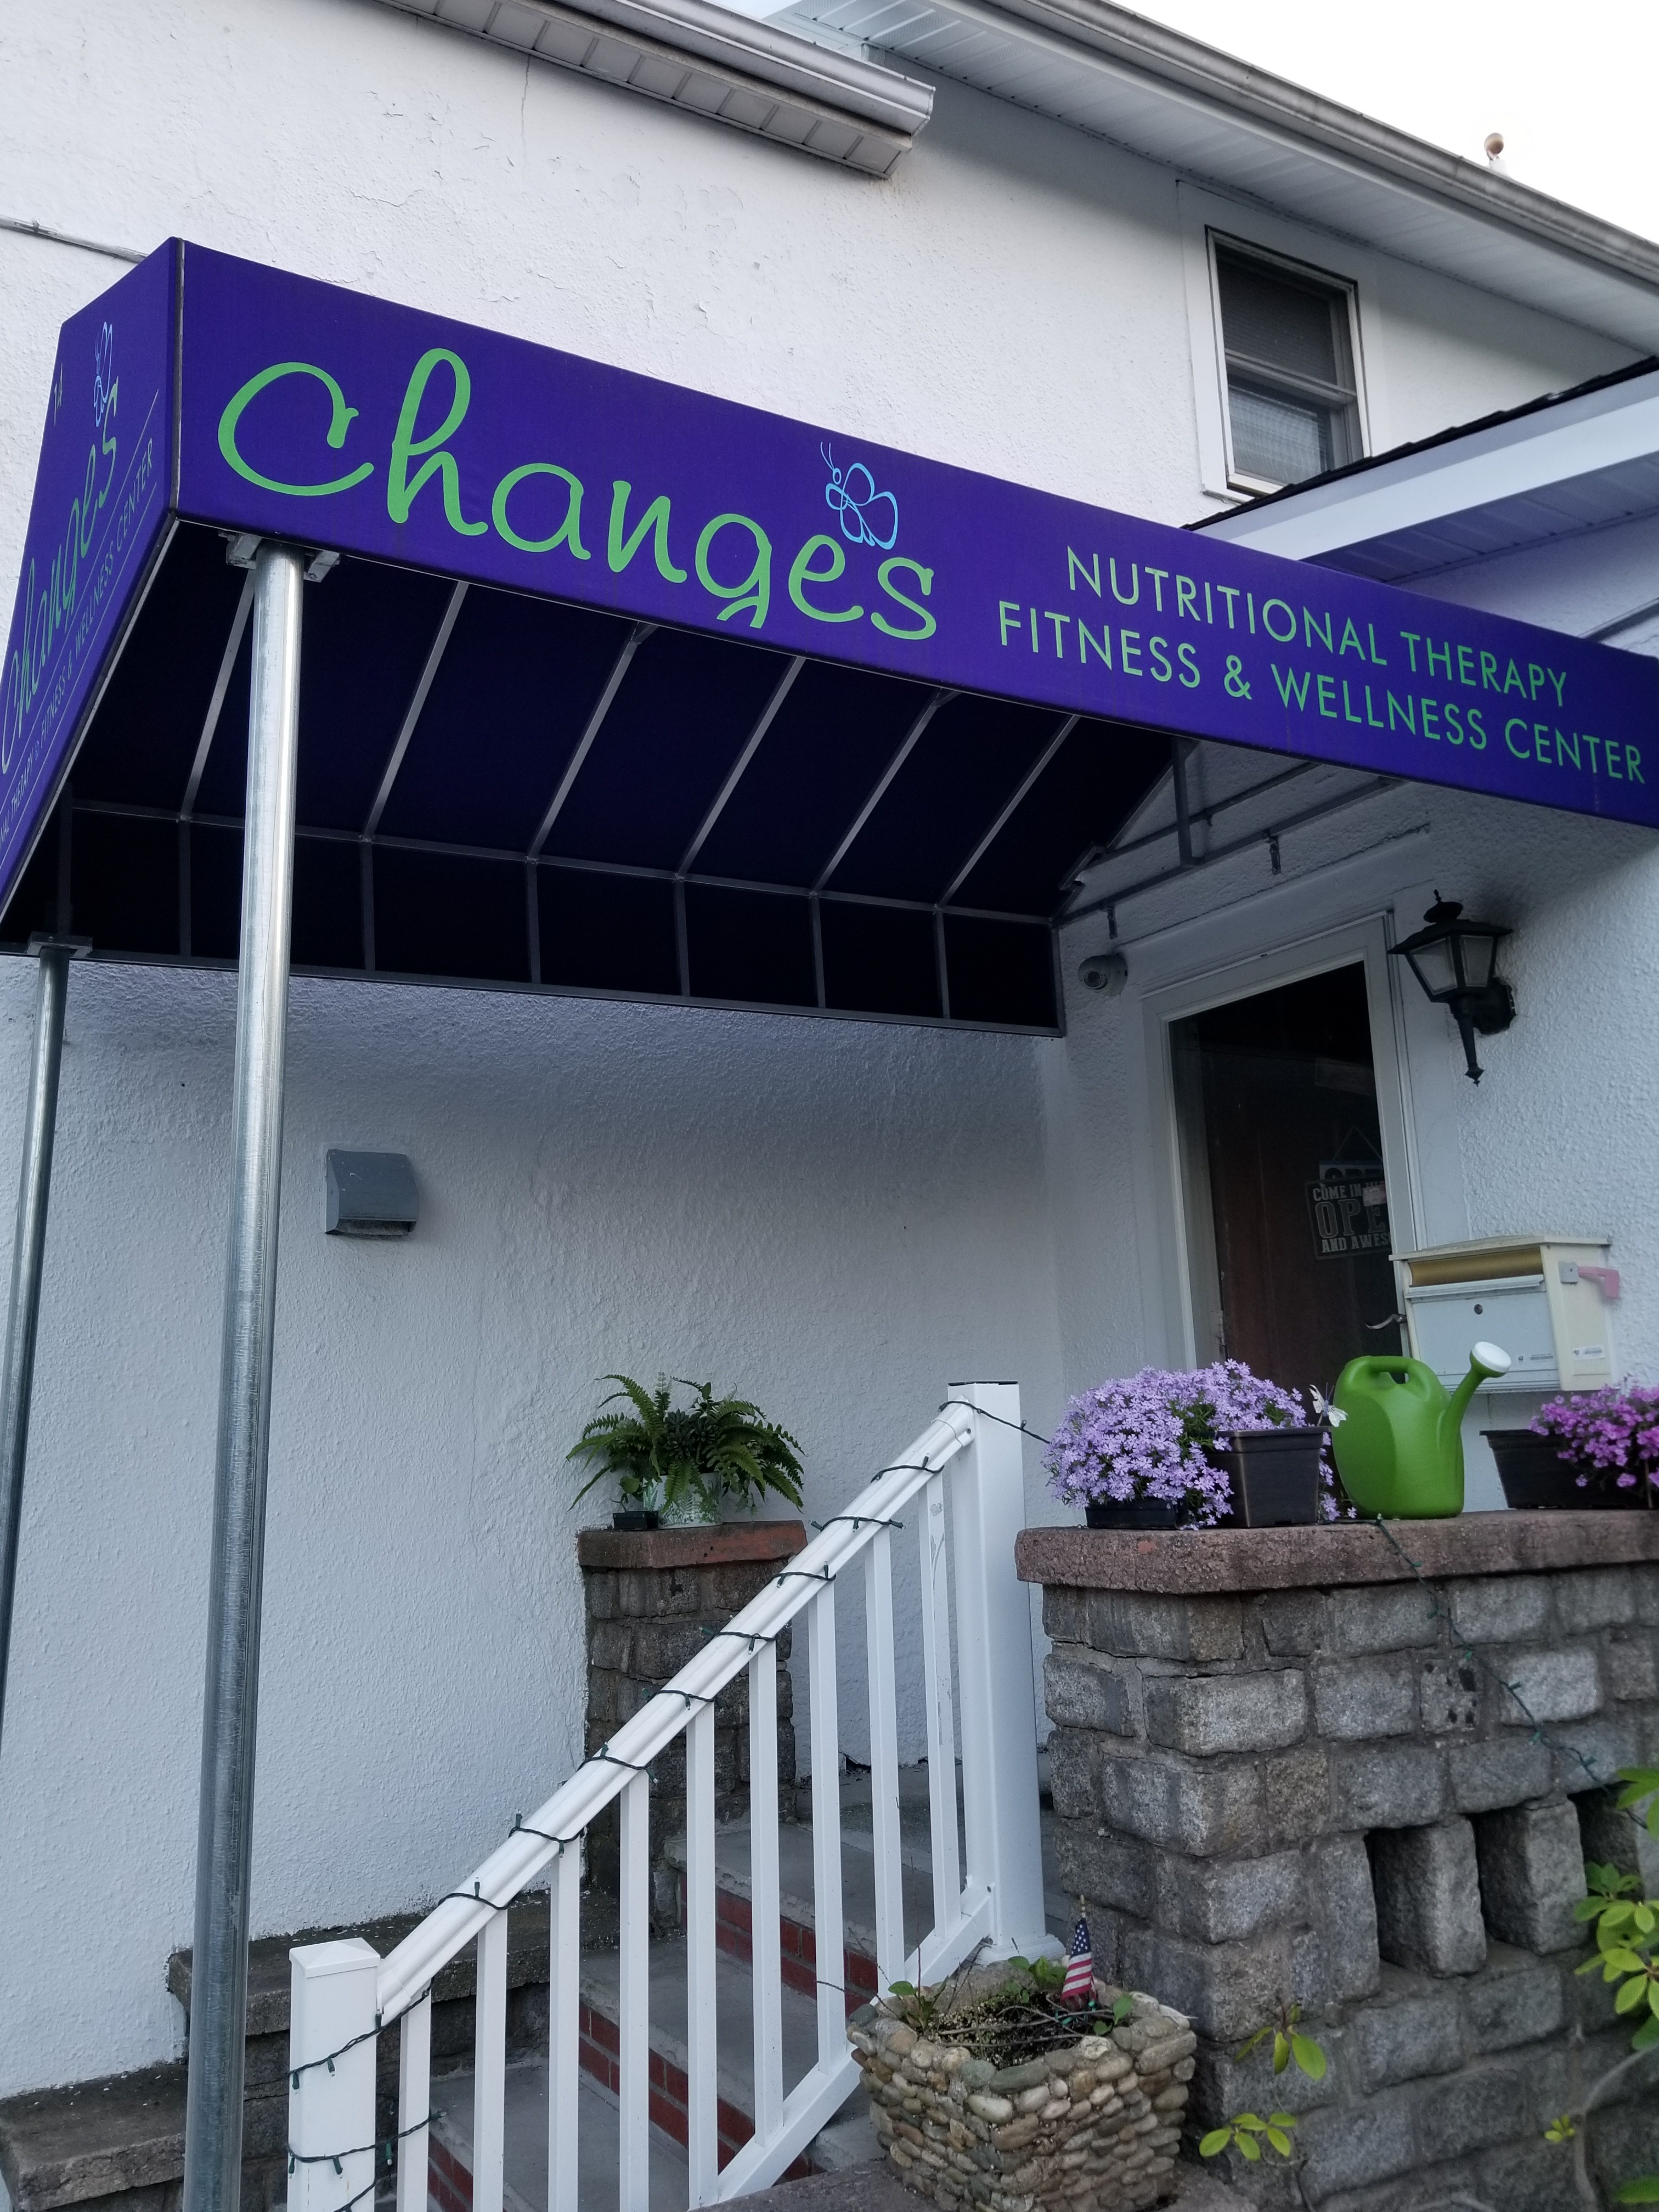 Changes Nutritional Therapy, Fitness and Wellness Center image 0